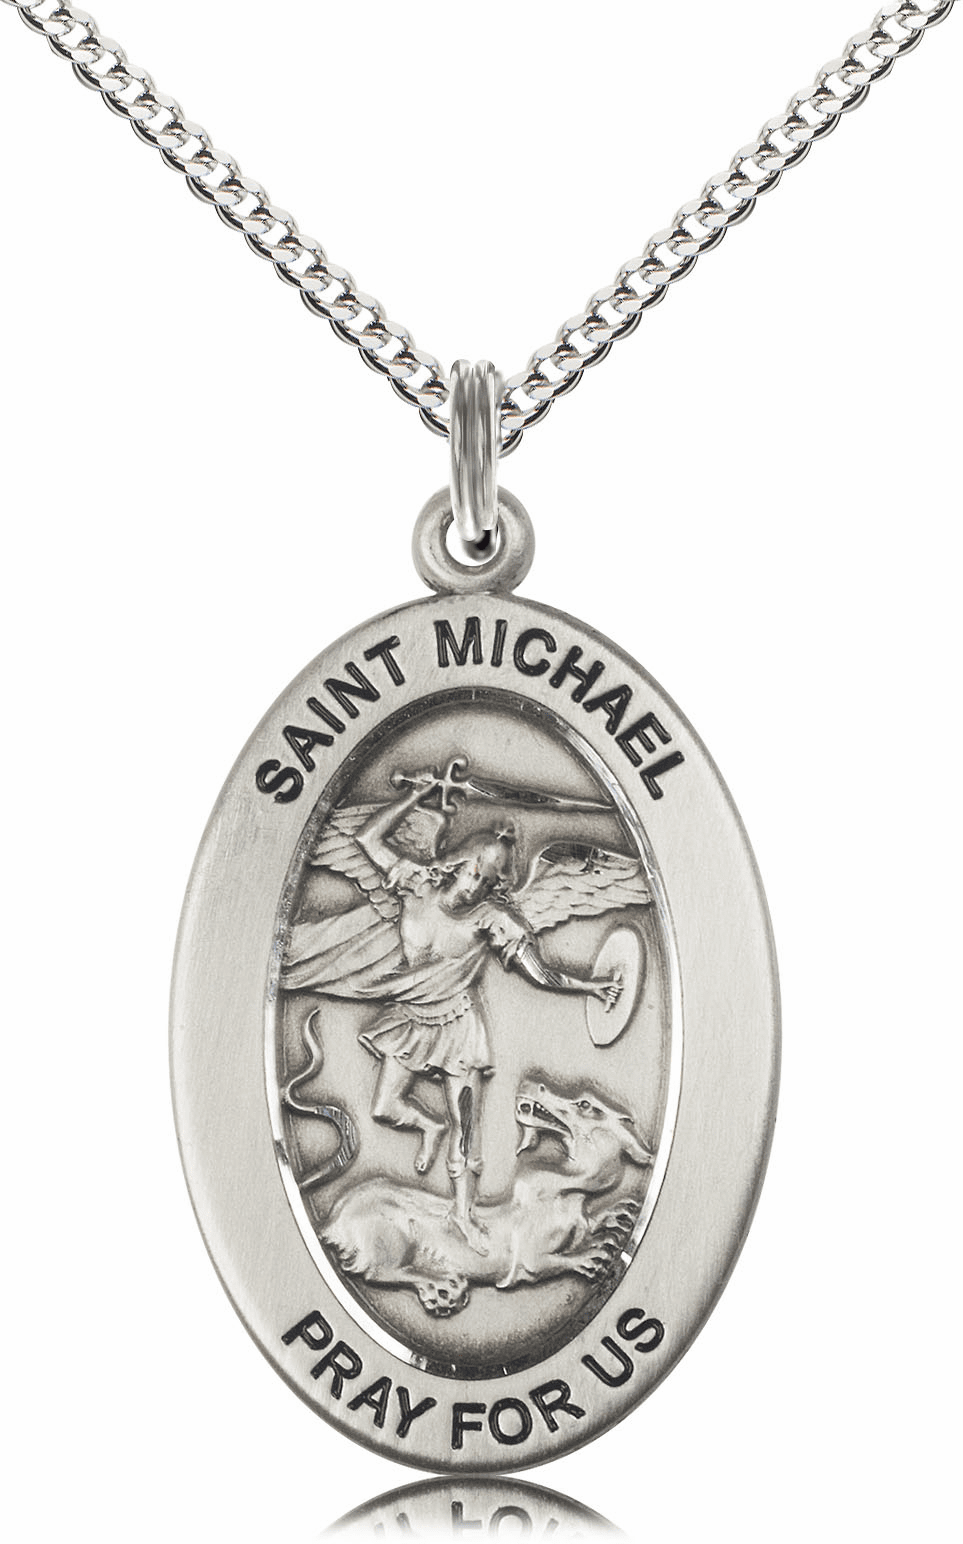 Bliss Mfg Saint Michael the Archangel Sterling Silver Medal Necklace w/Chain